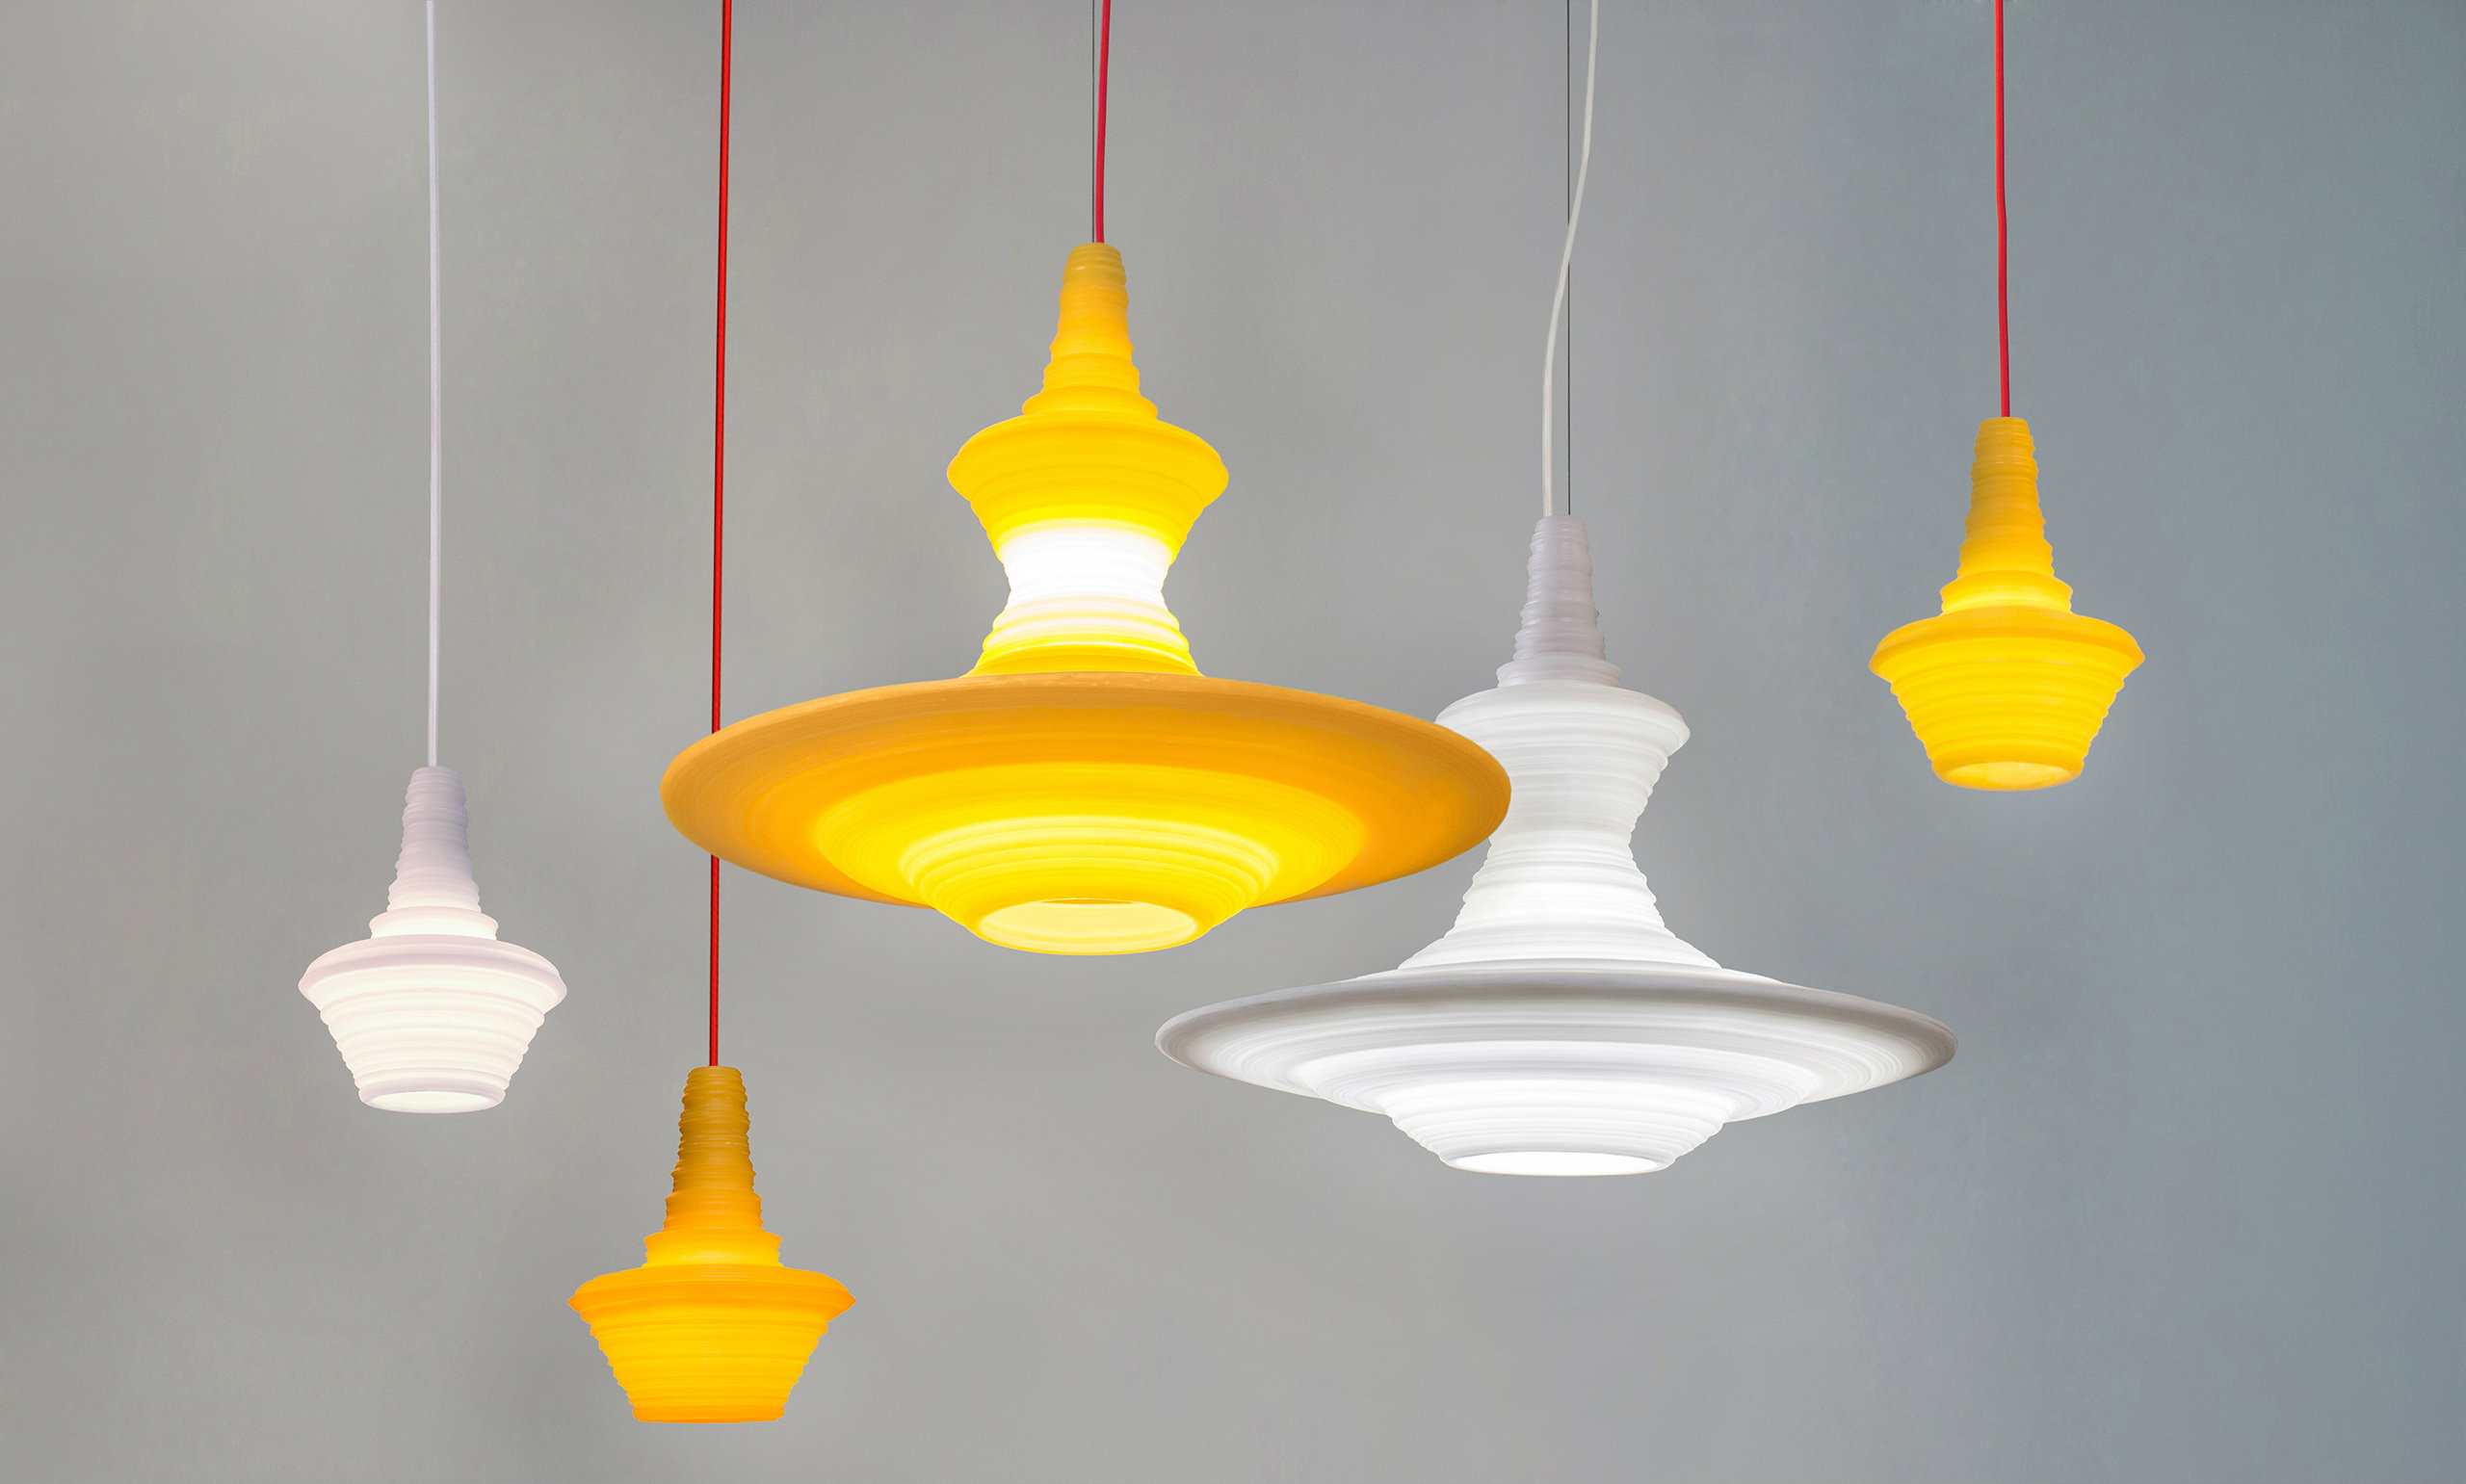 stupa Stupa White pendant lights launched at Maison & Objet Stupa White pendant lights launched at Maison Objet cover